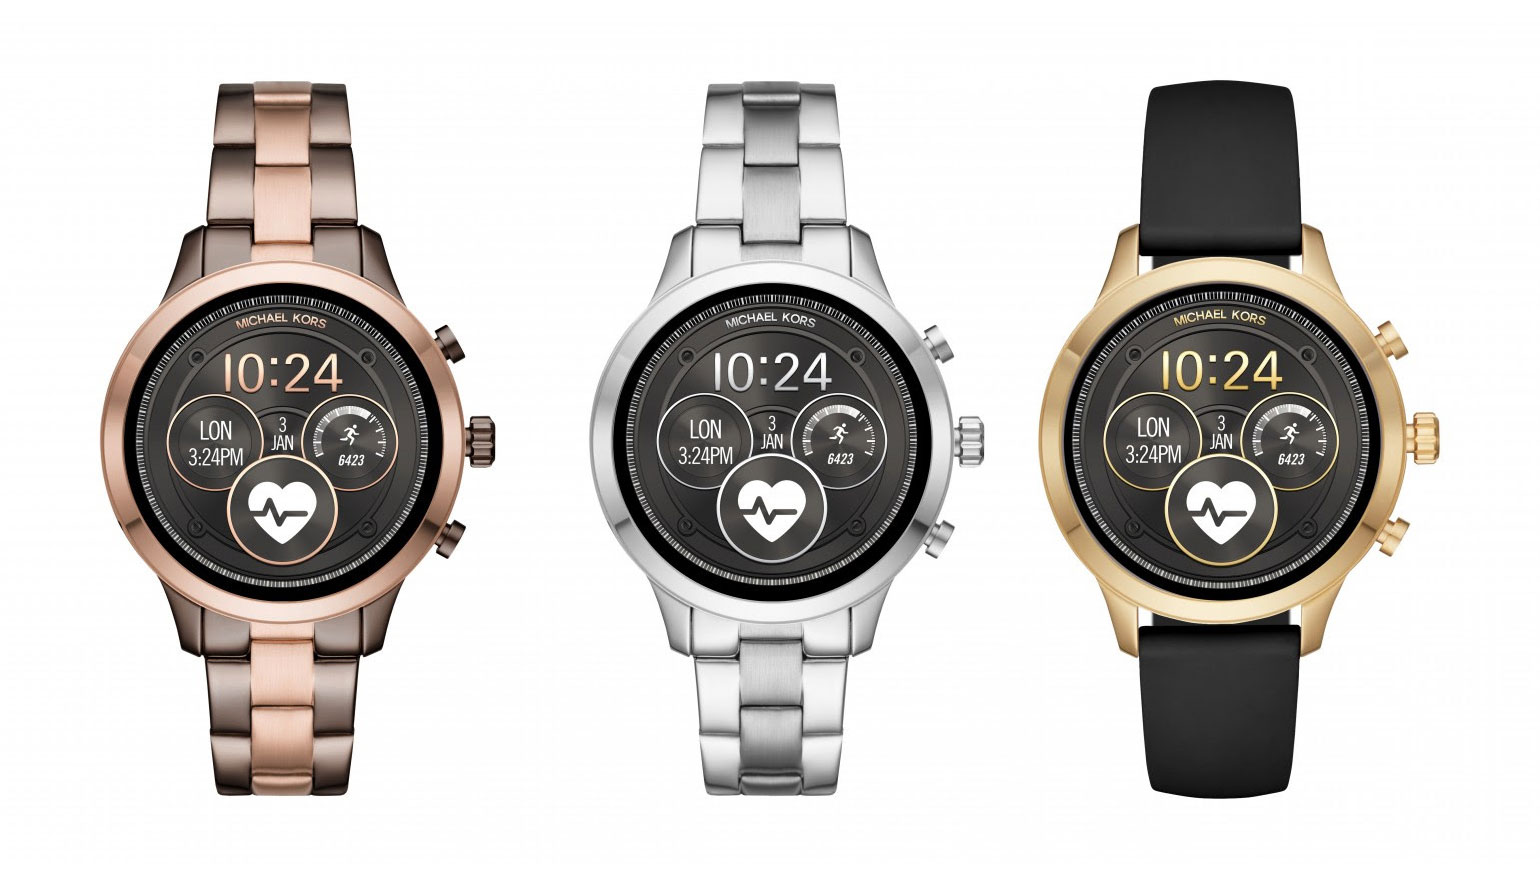 Runway horloge van Michael Kors is er nu als smartwatch